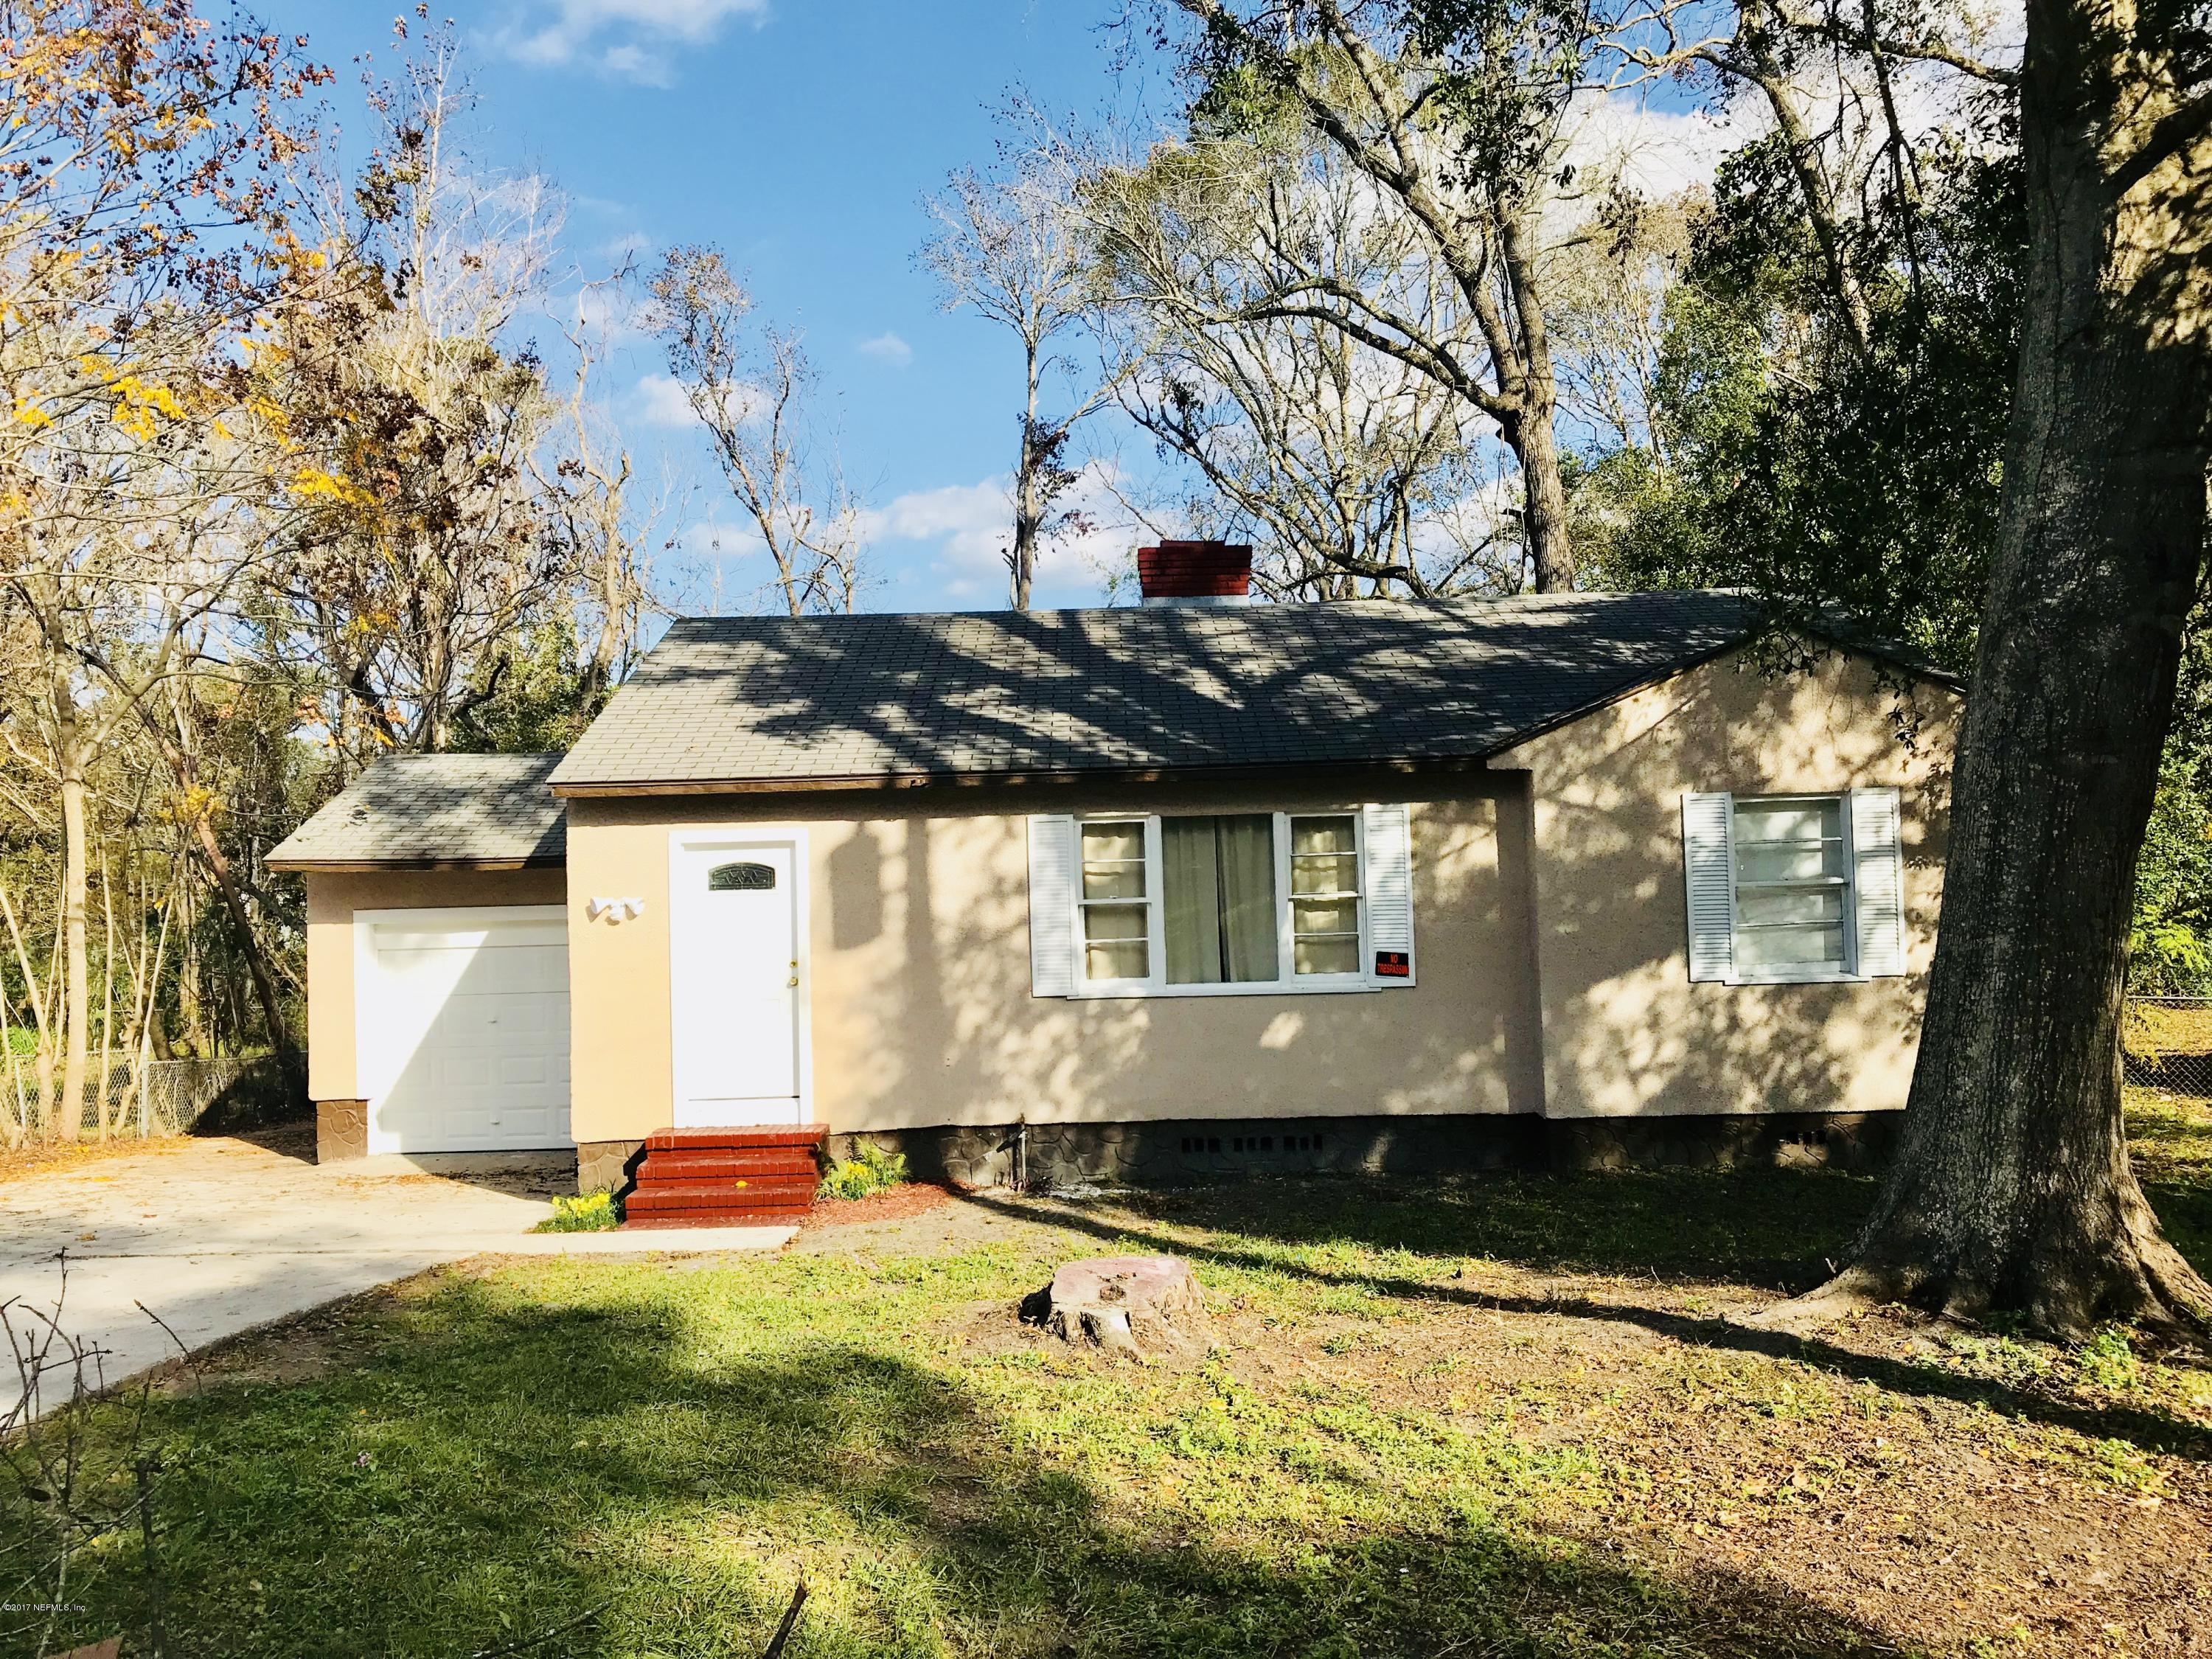 7909 WAINWRIGHT, JACKSONVILLE, FLORIDA 32208, 2 Bedrooms Bedrooms, ,1 BathroomBathrooms,Residential - single family,For sale,WAINWRIGHT,914141